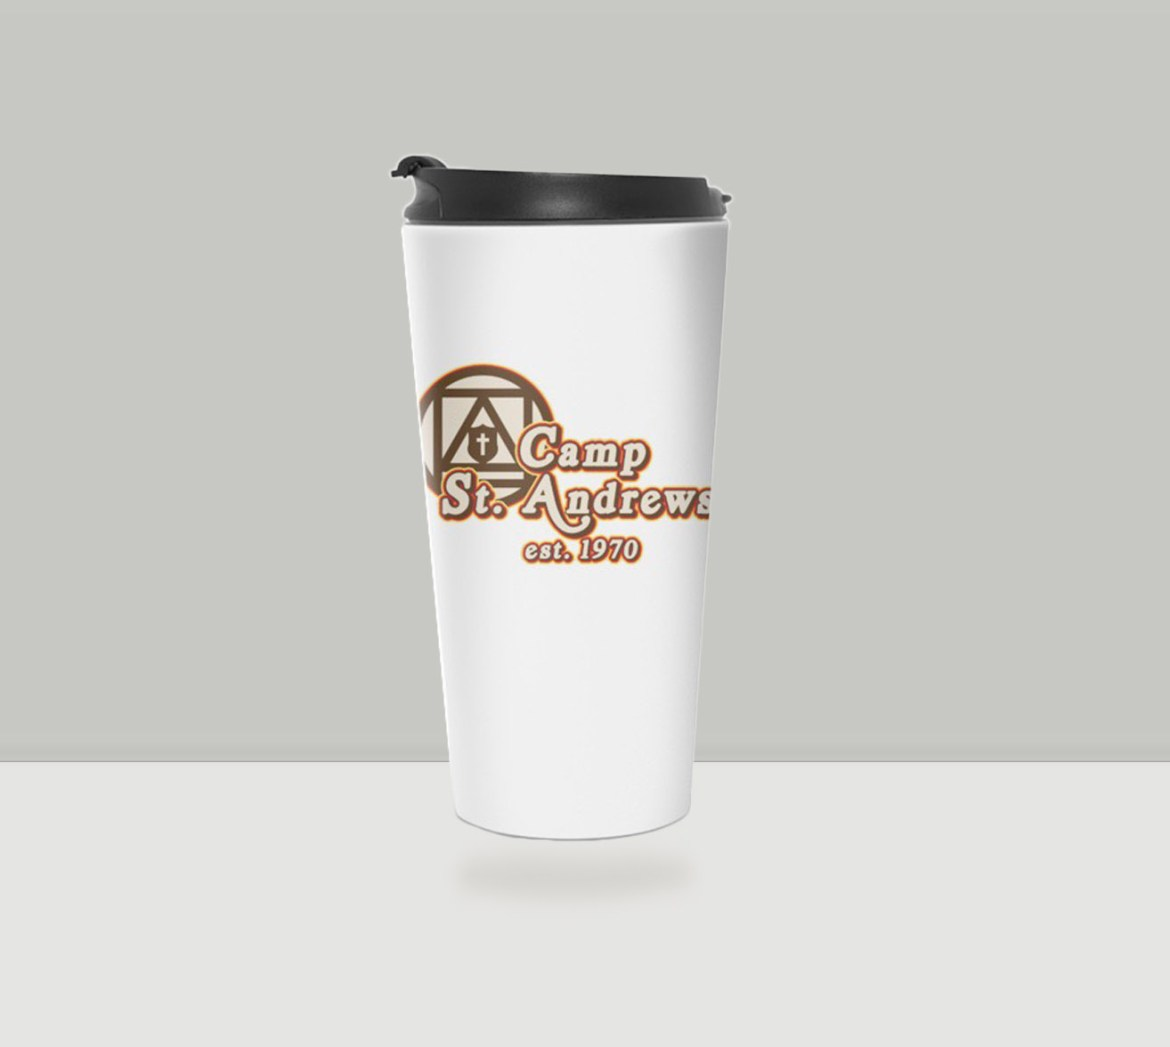 Camp St. Andrews 2020 70s Style Travel Mug